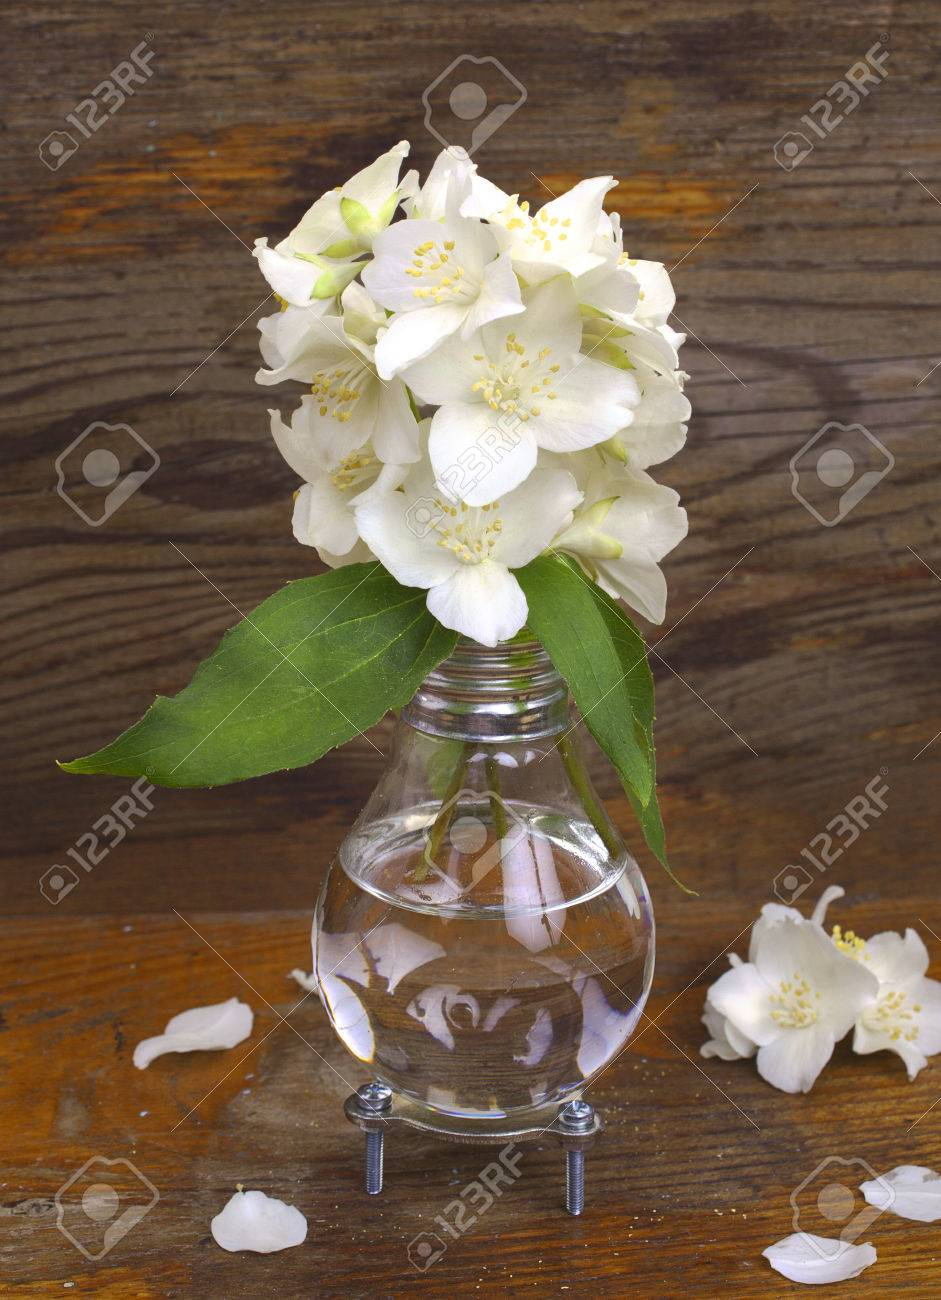 123RF.com & Handmade light bulb vase with jasmine flowers on the background..